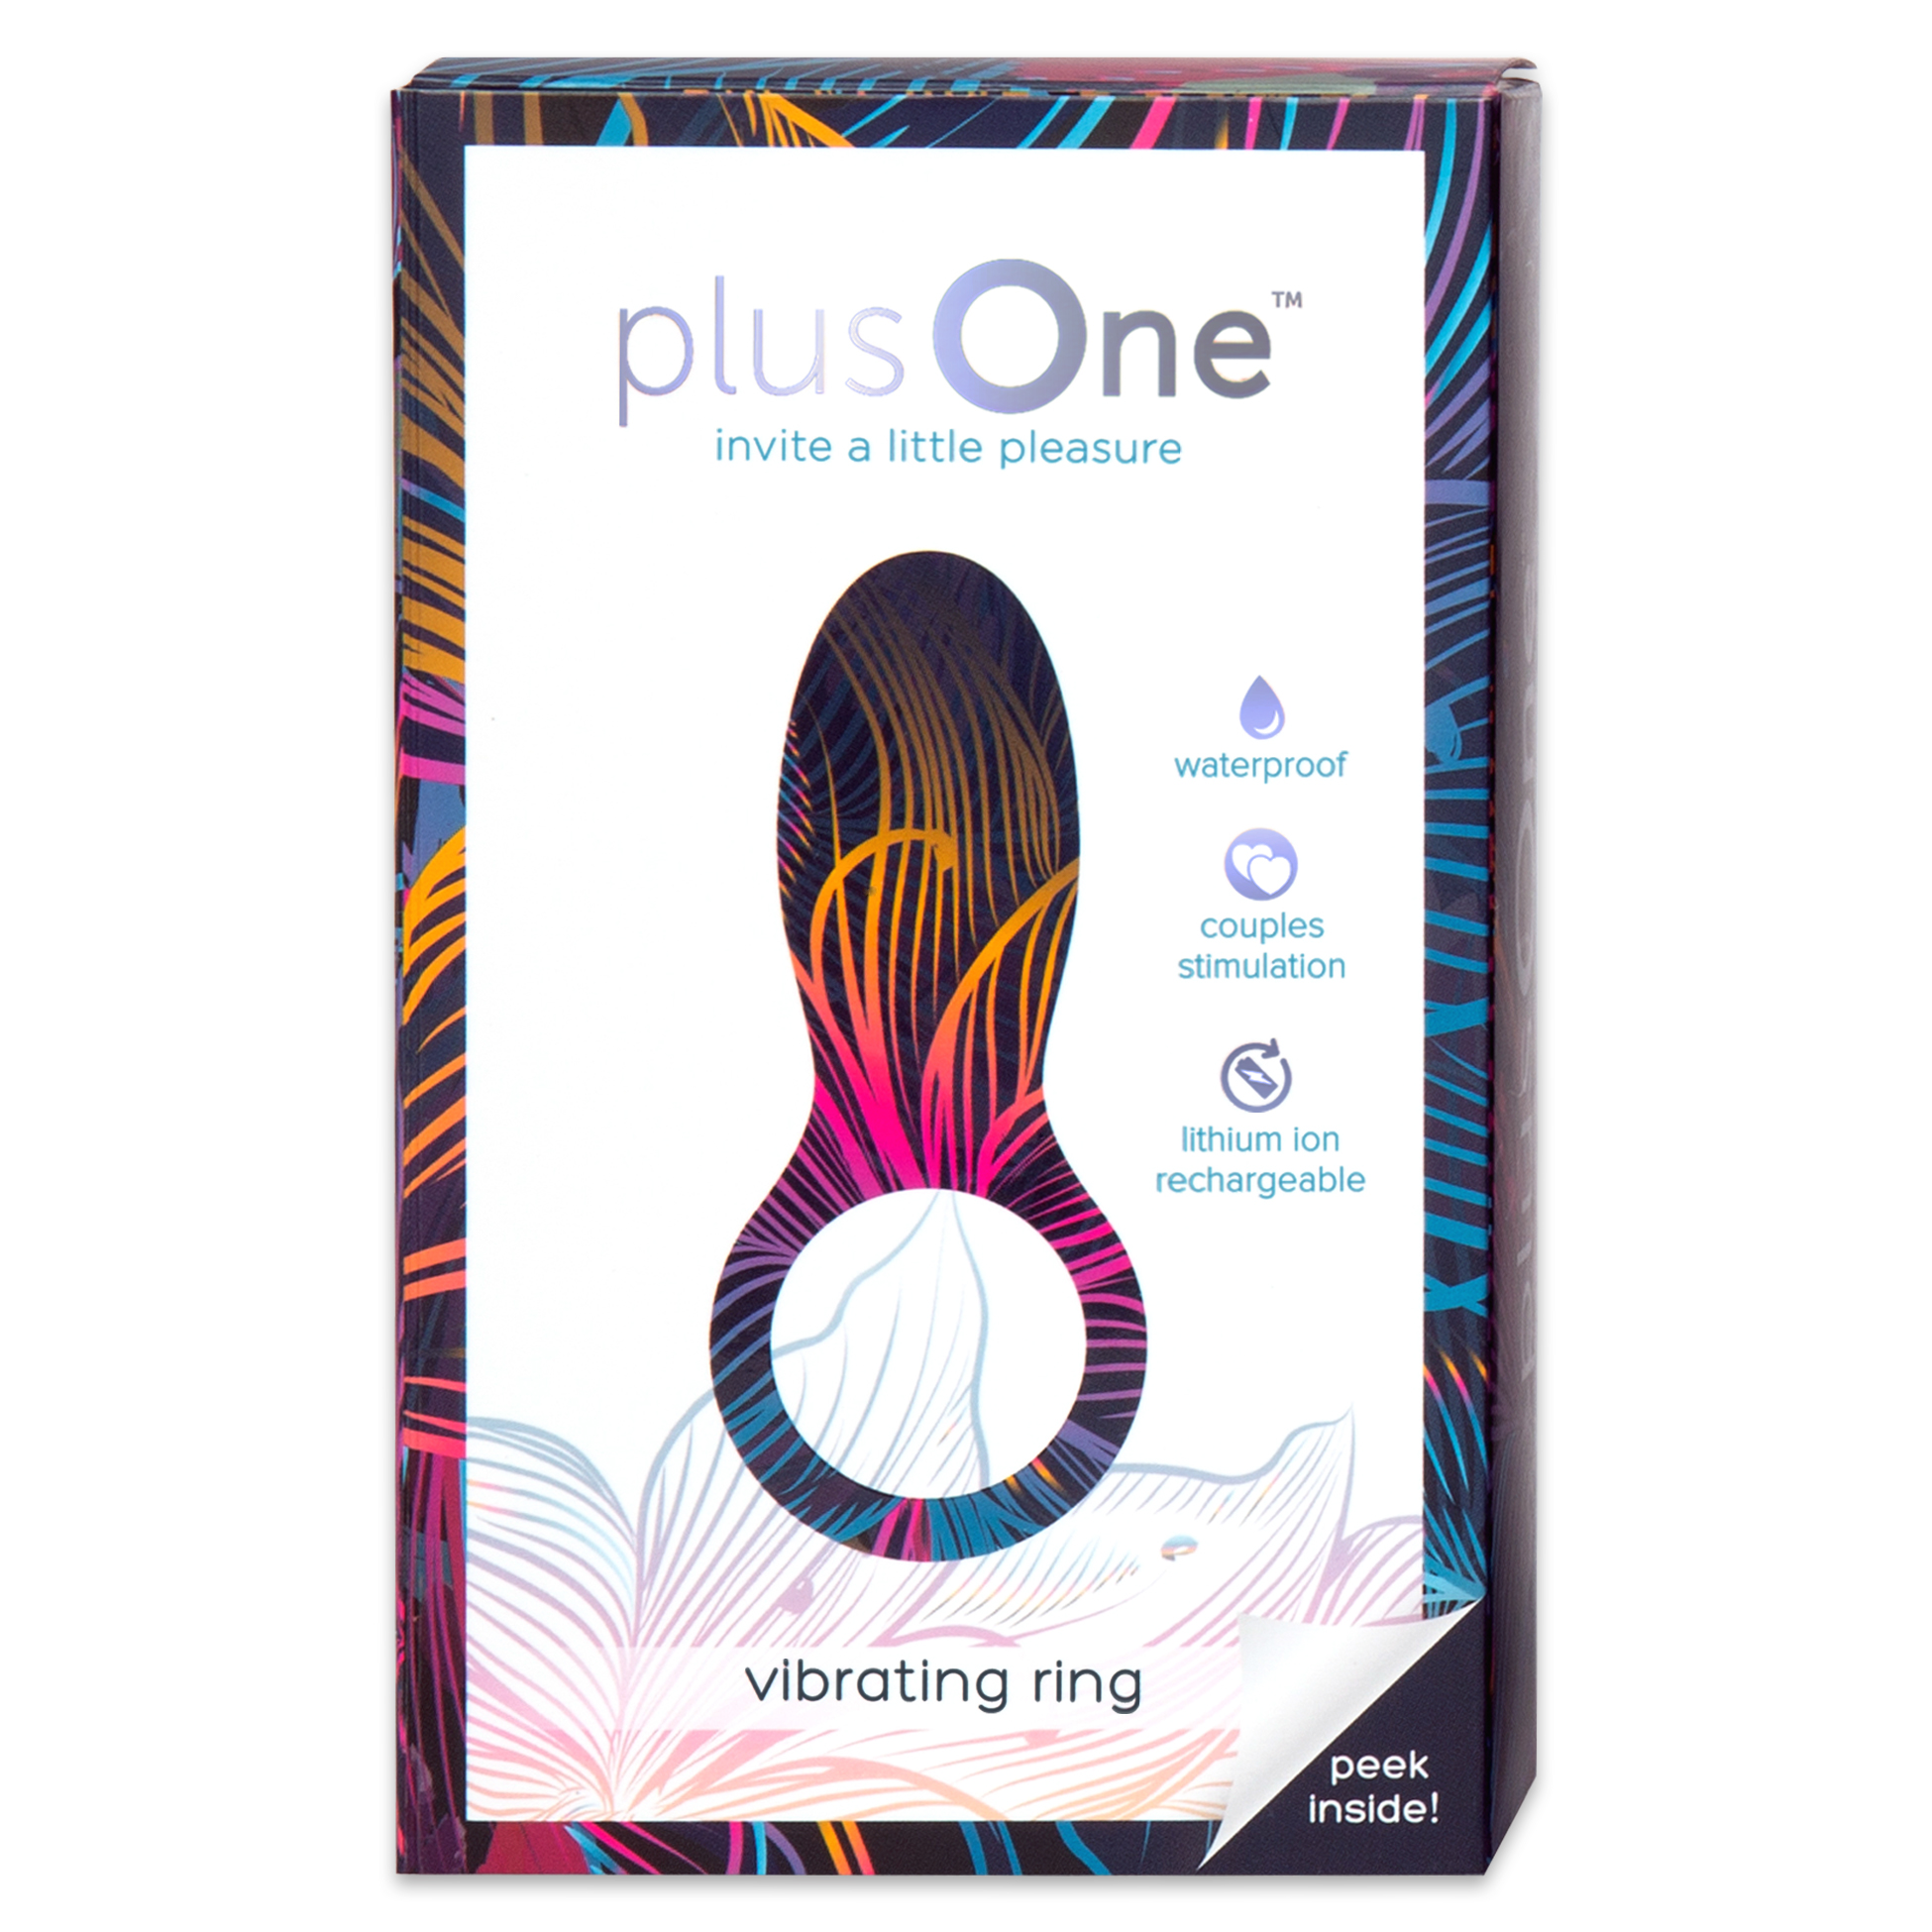 plusOne Vibrating Ring